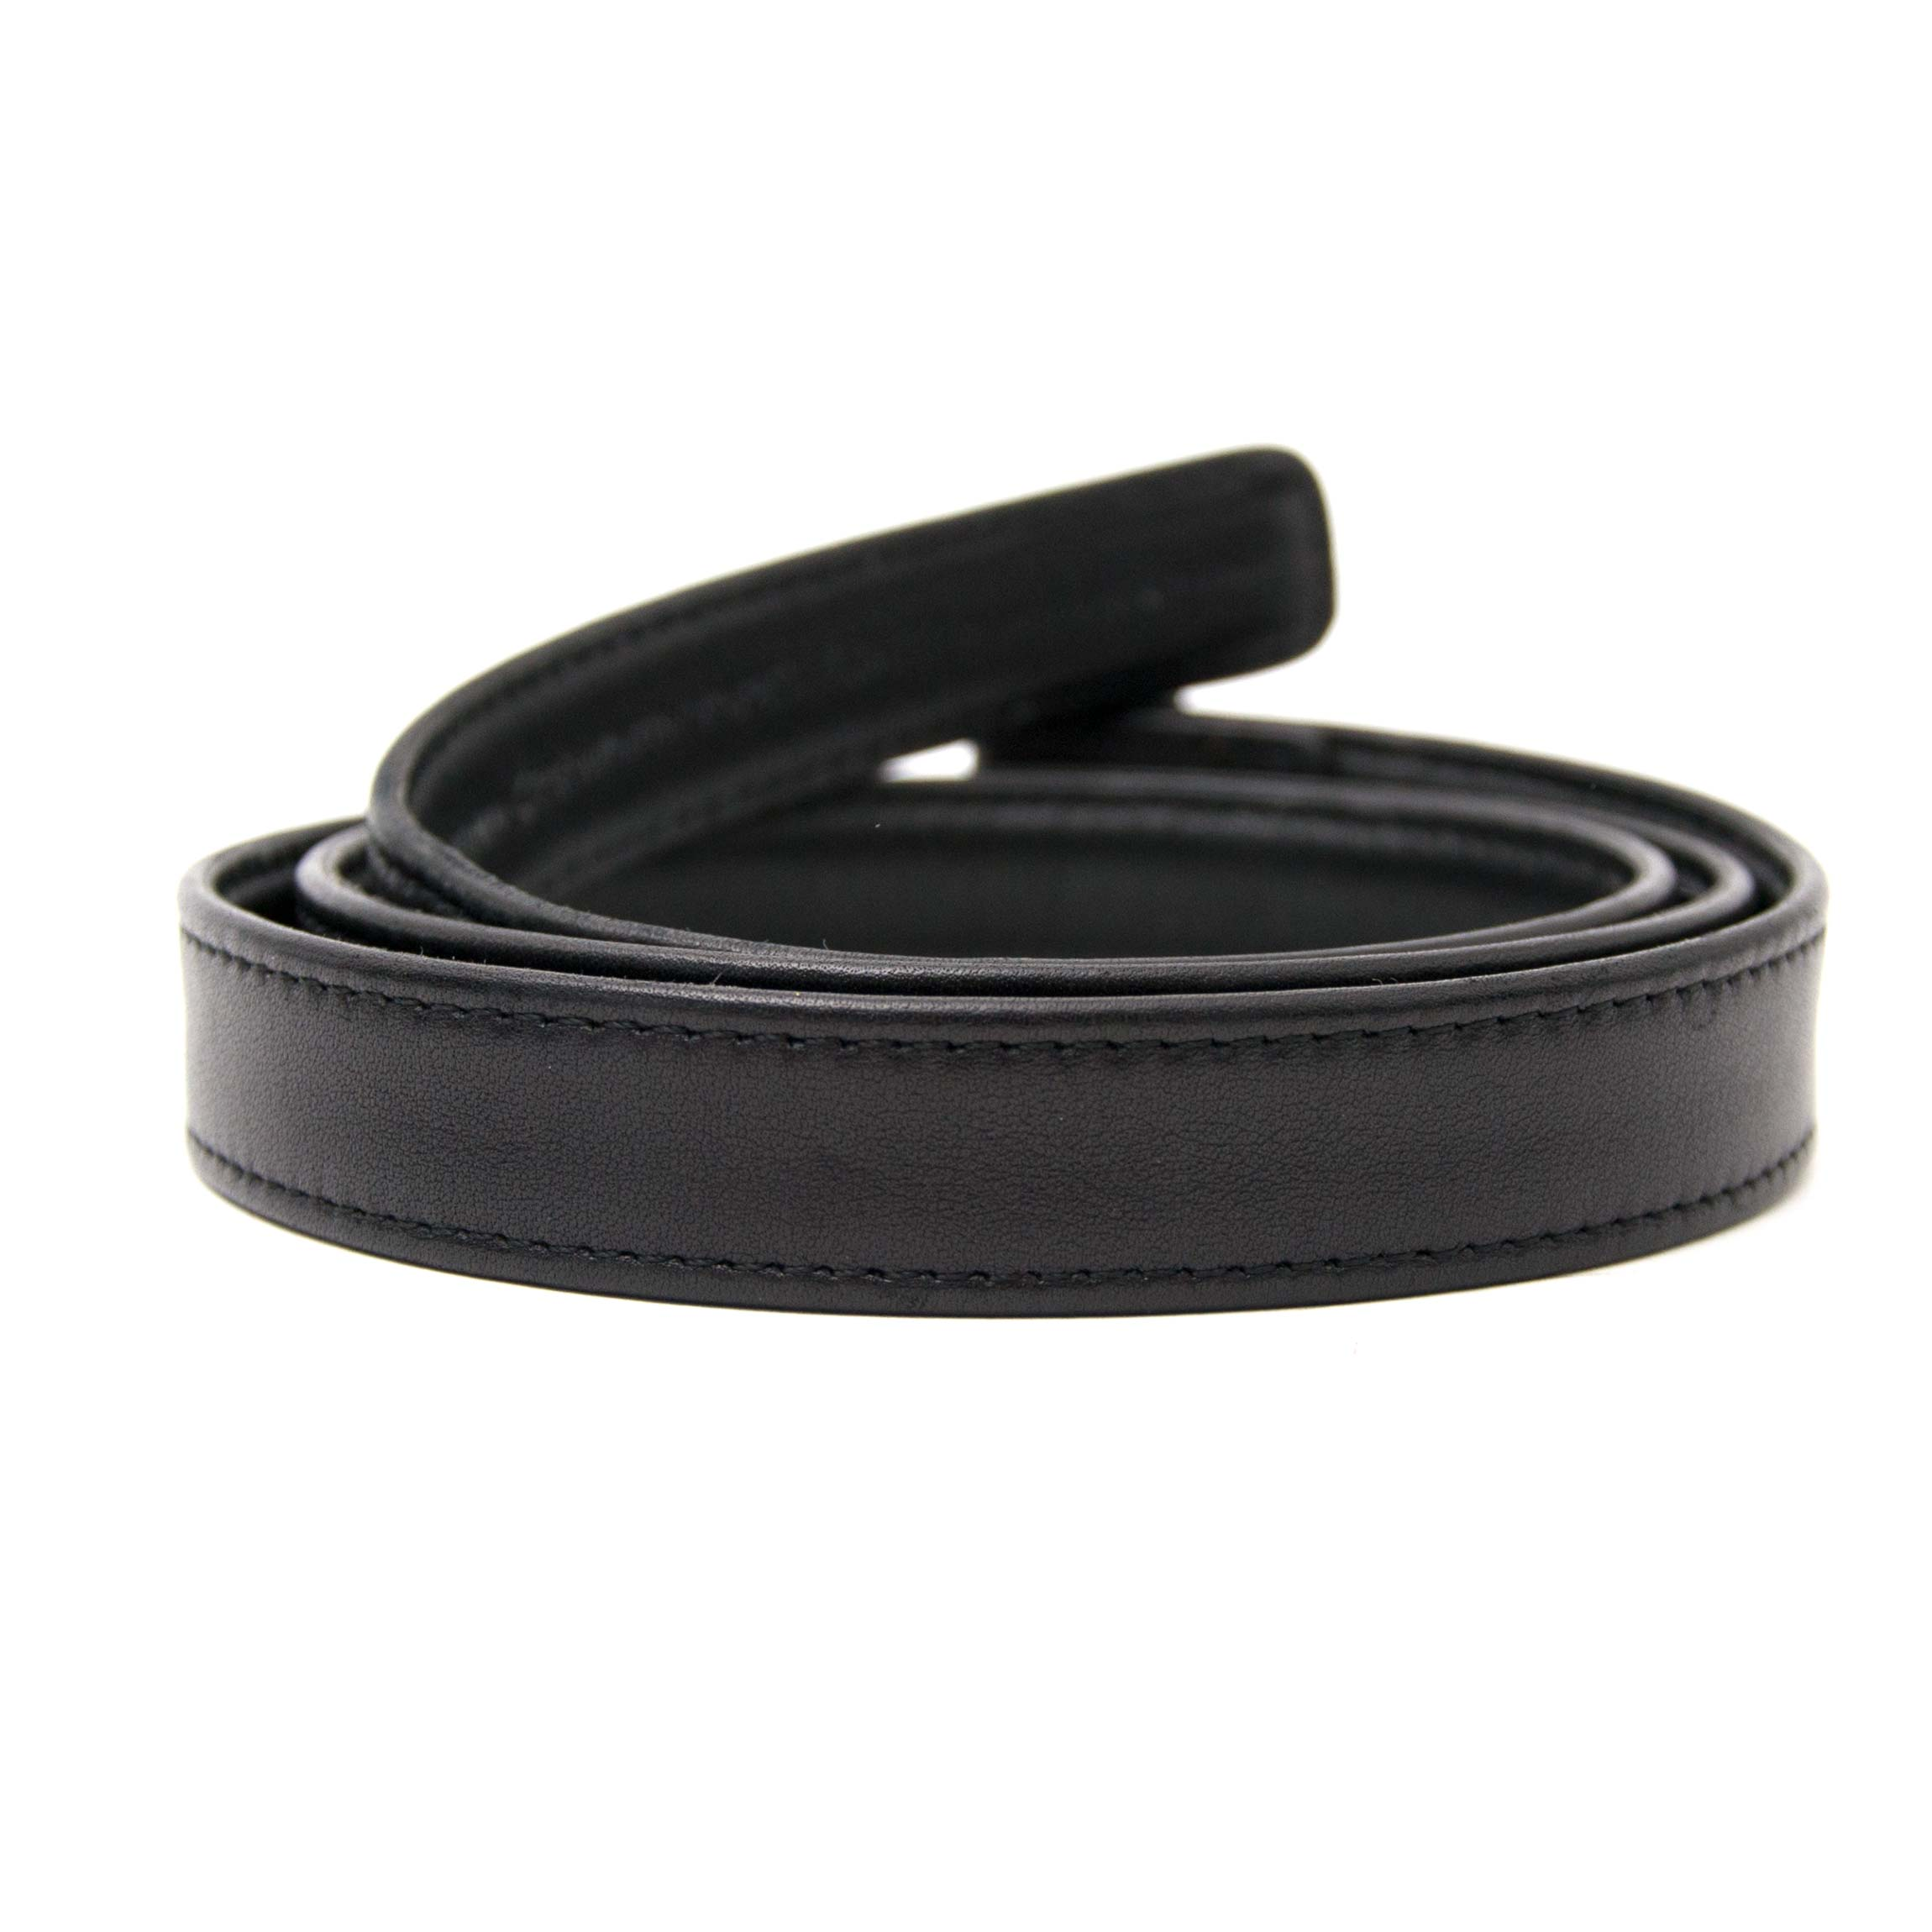 Buy now the Chanel Small Black Belt, worldwide shipping and safe secure shopping, 100% authentic.